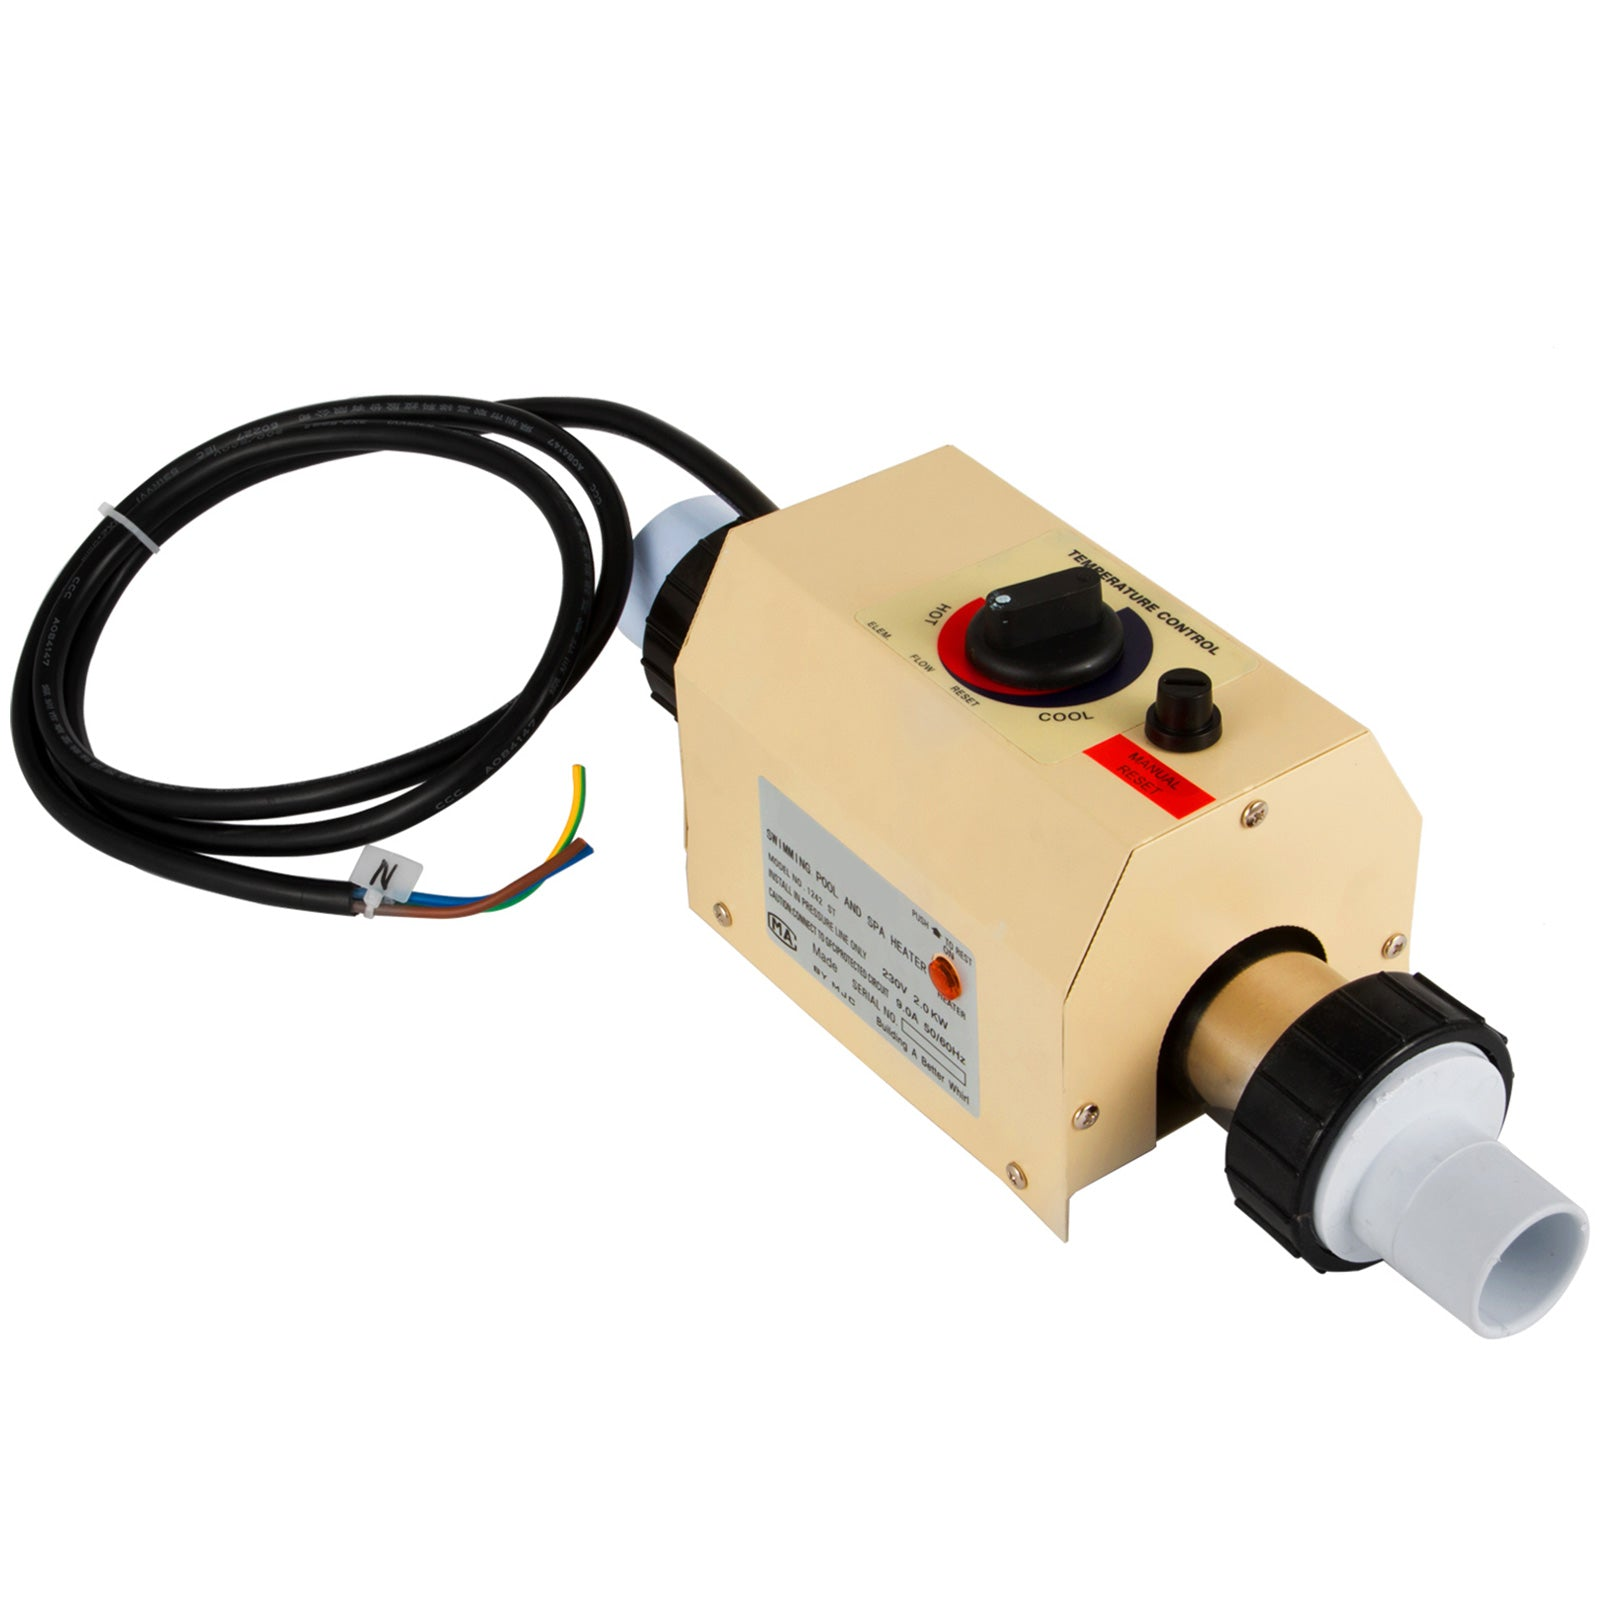 2kw Hot Tub Electric Water Heater Thermostat For Swimming Pool & Bath Spa